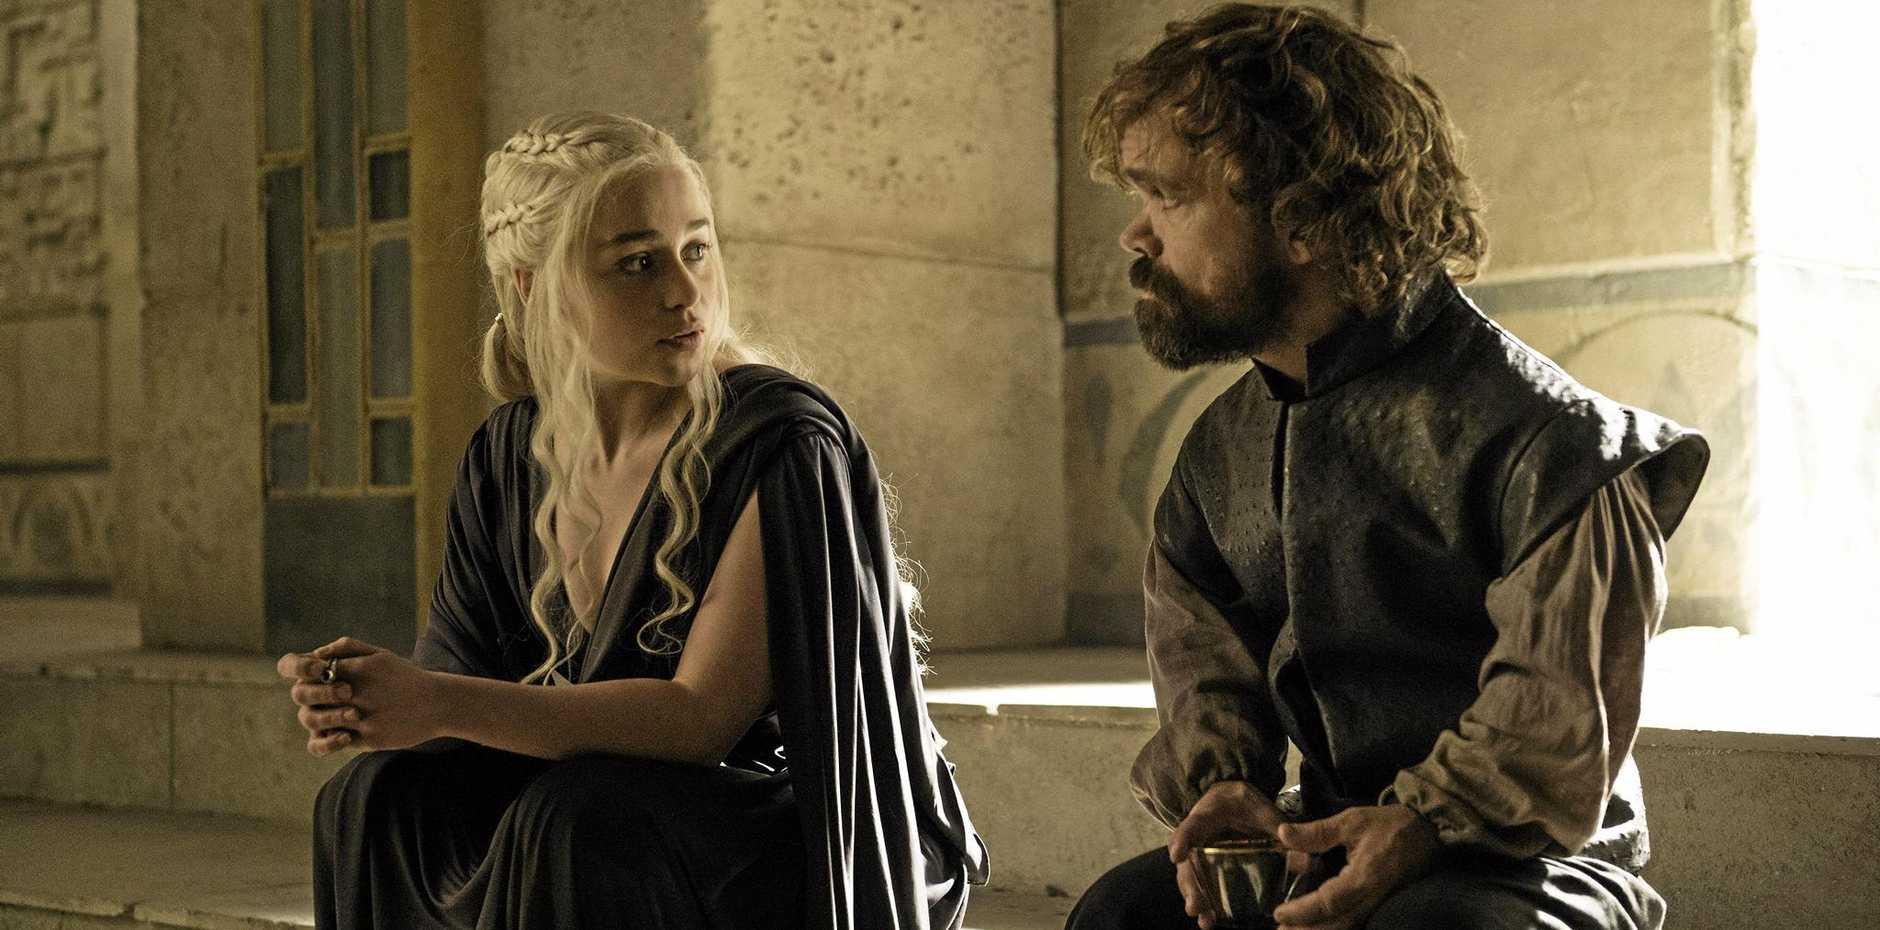 Emilia Clarke and Peter Dinklage in a scene from season six episode 10 of Game of Thrones. Supplied by Foxtel.